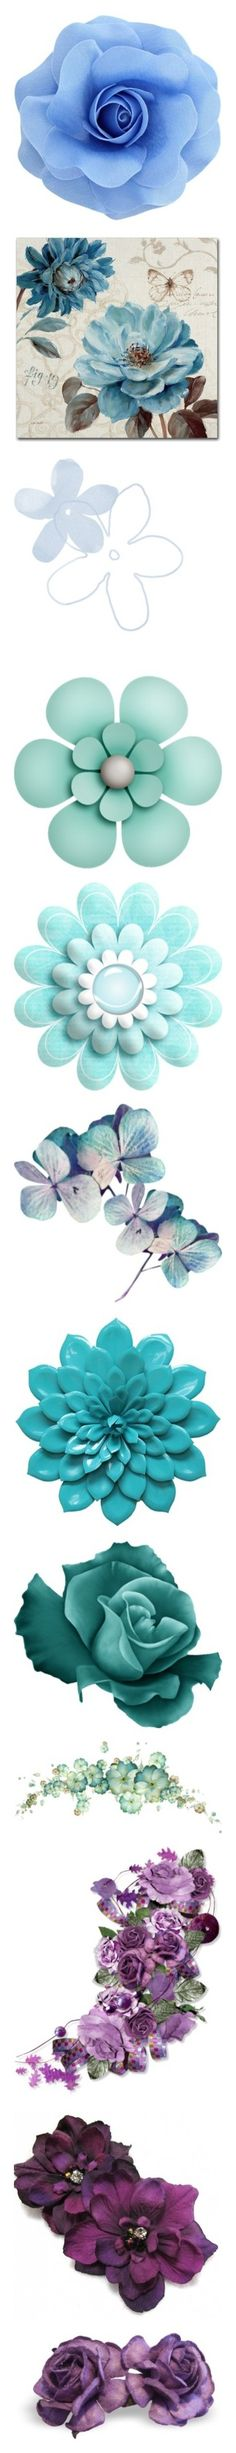 """Flowers&Leafs"" by kinakollect on Polyvore featuring jewelry, brooches, hair, rose brooch, flower broach, rose jewelry, light blue jewelry, pin jewelry, home と home decor"